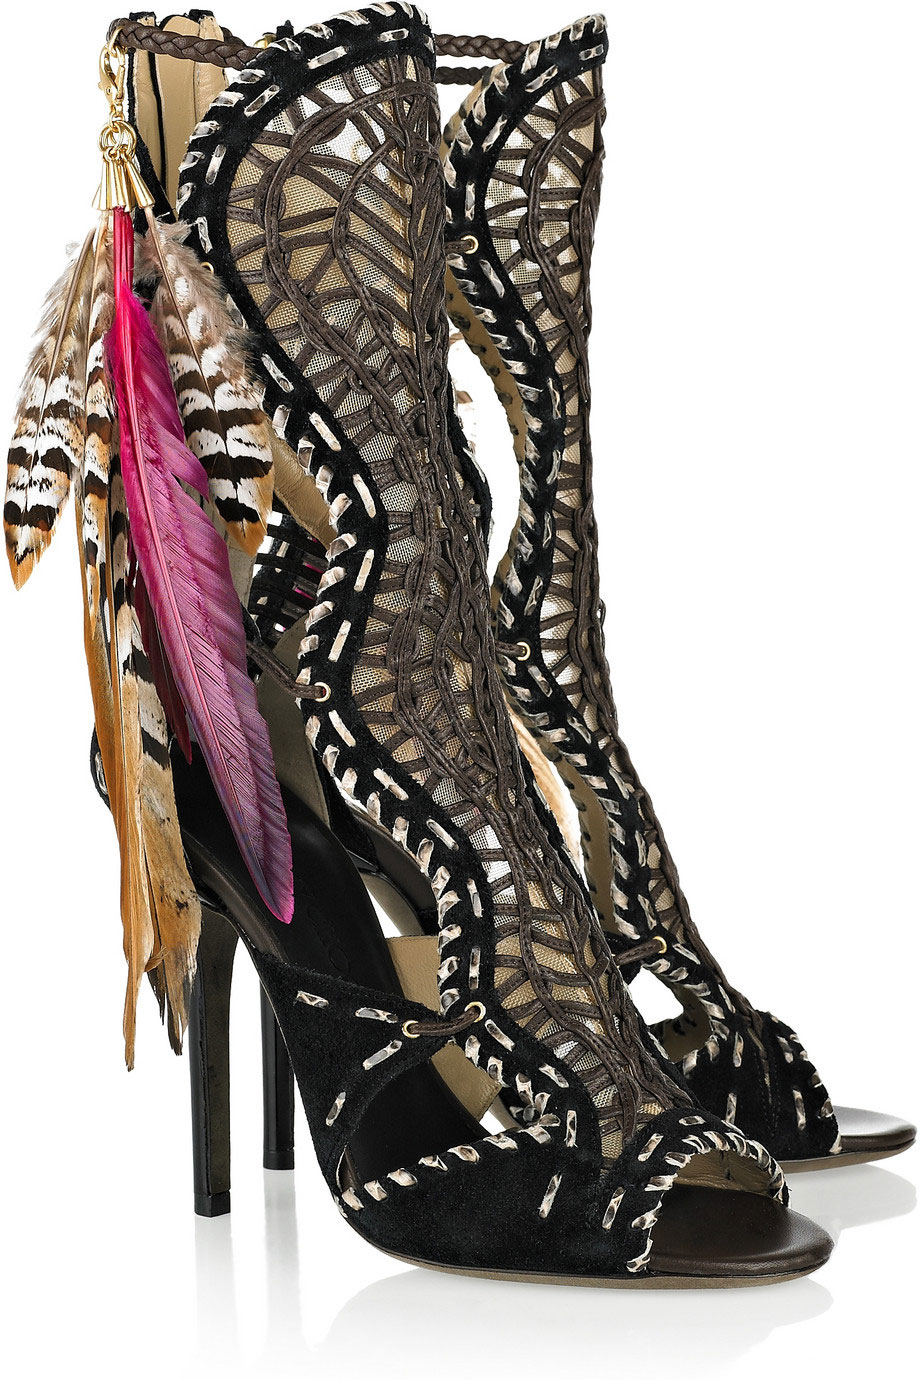 Jimmy Choo Kevan Woven Leather And Suede Sandals